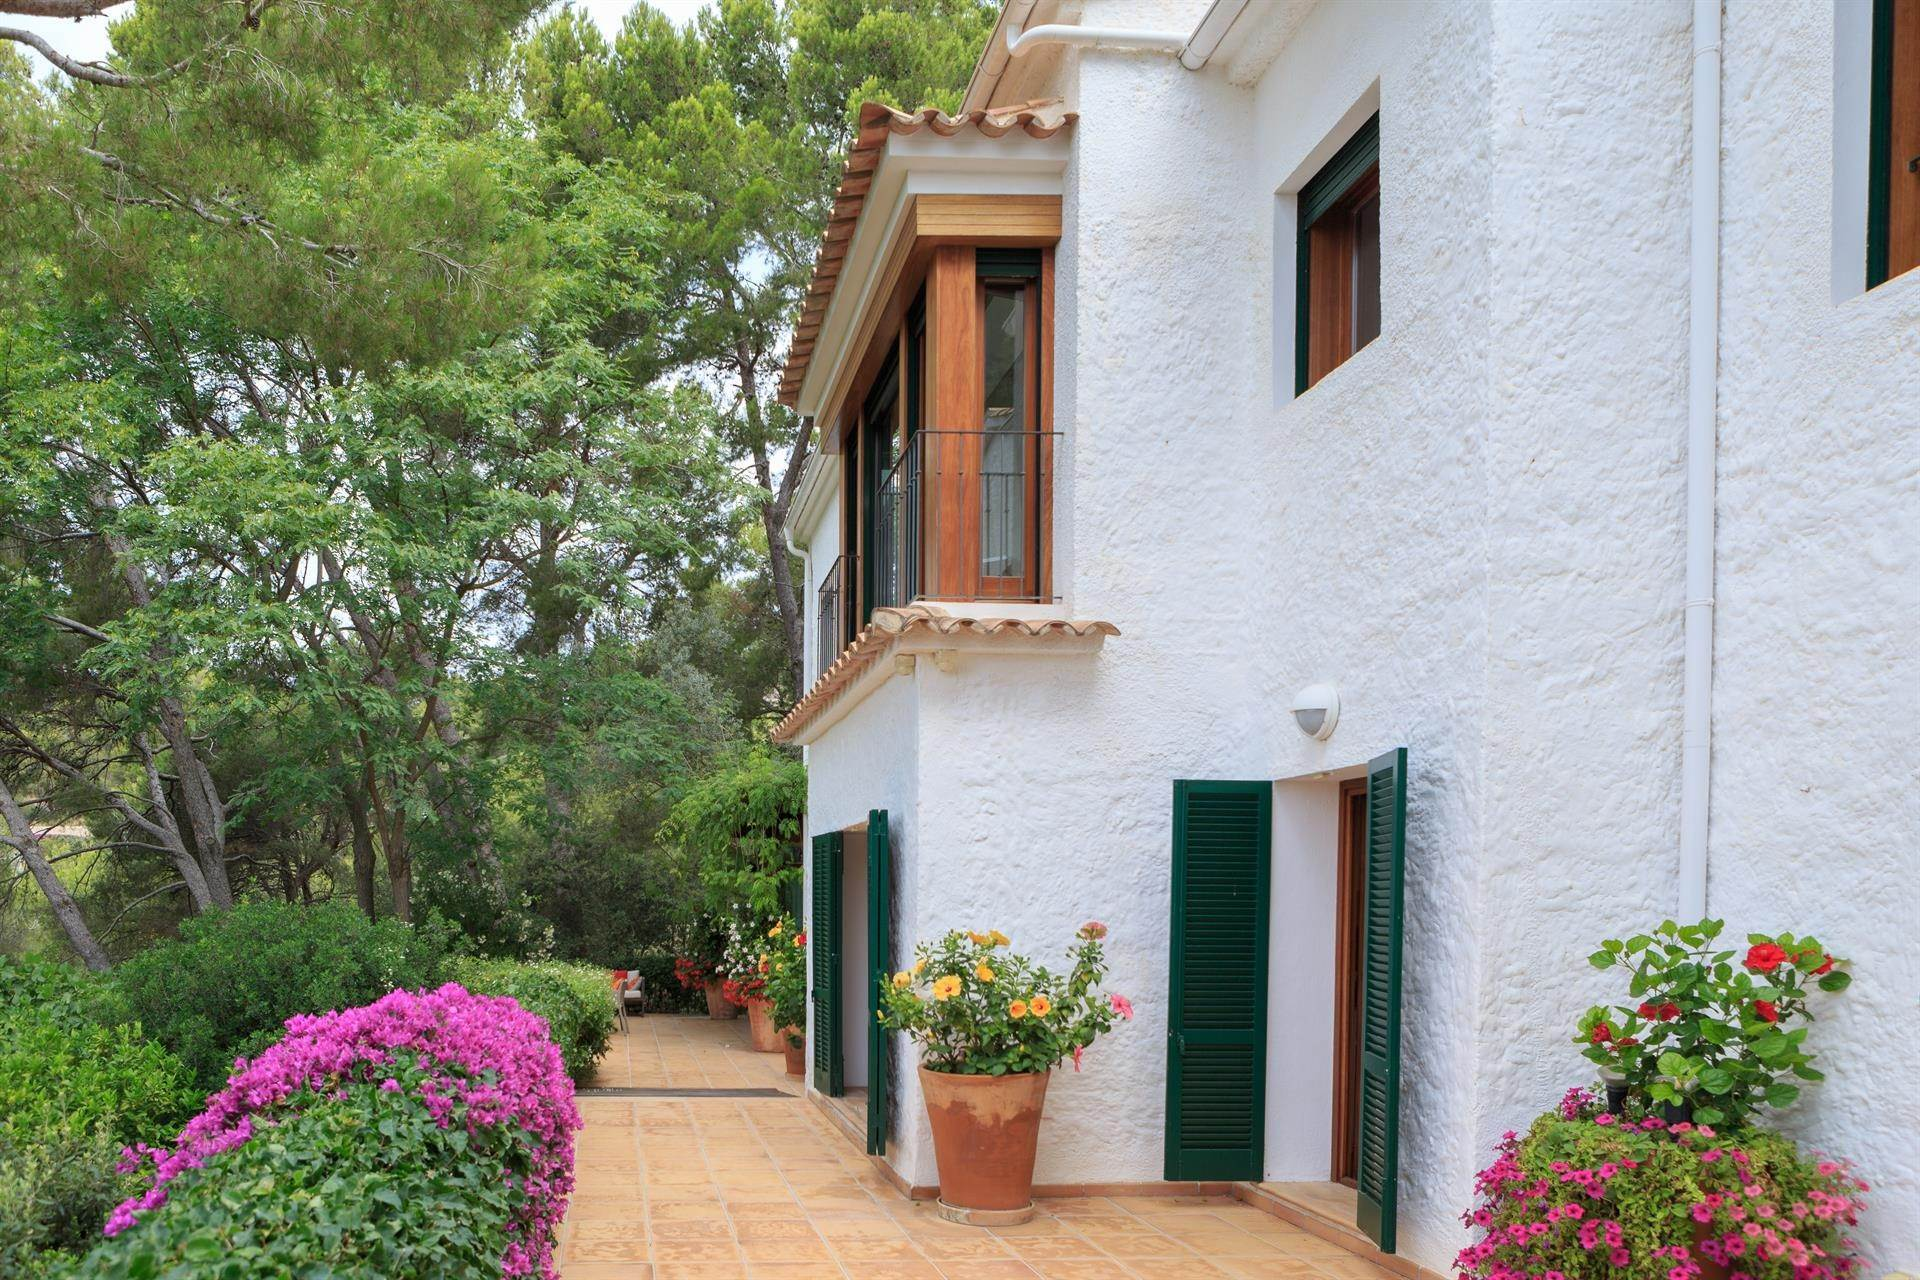 2. Single Family Home per Vendita alle ore Villa Formentor - Private Villa with Sea Views Formentor, Spagna